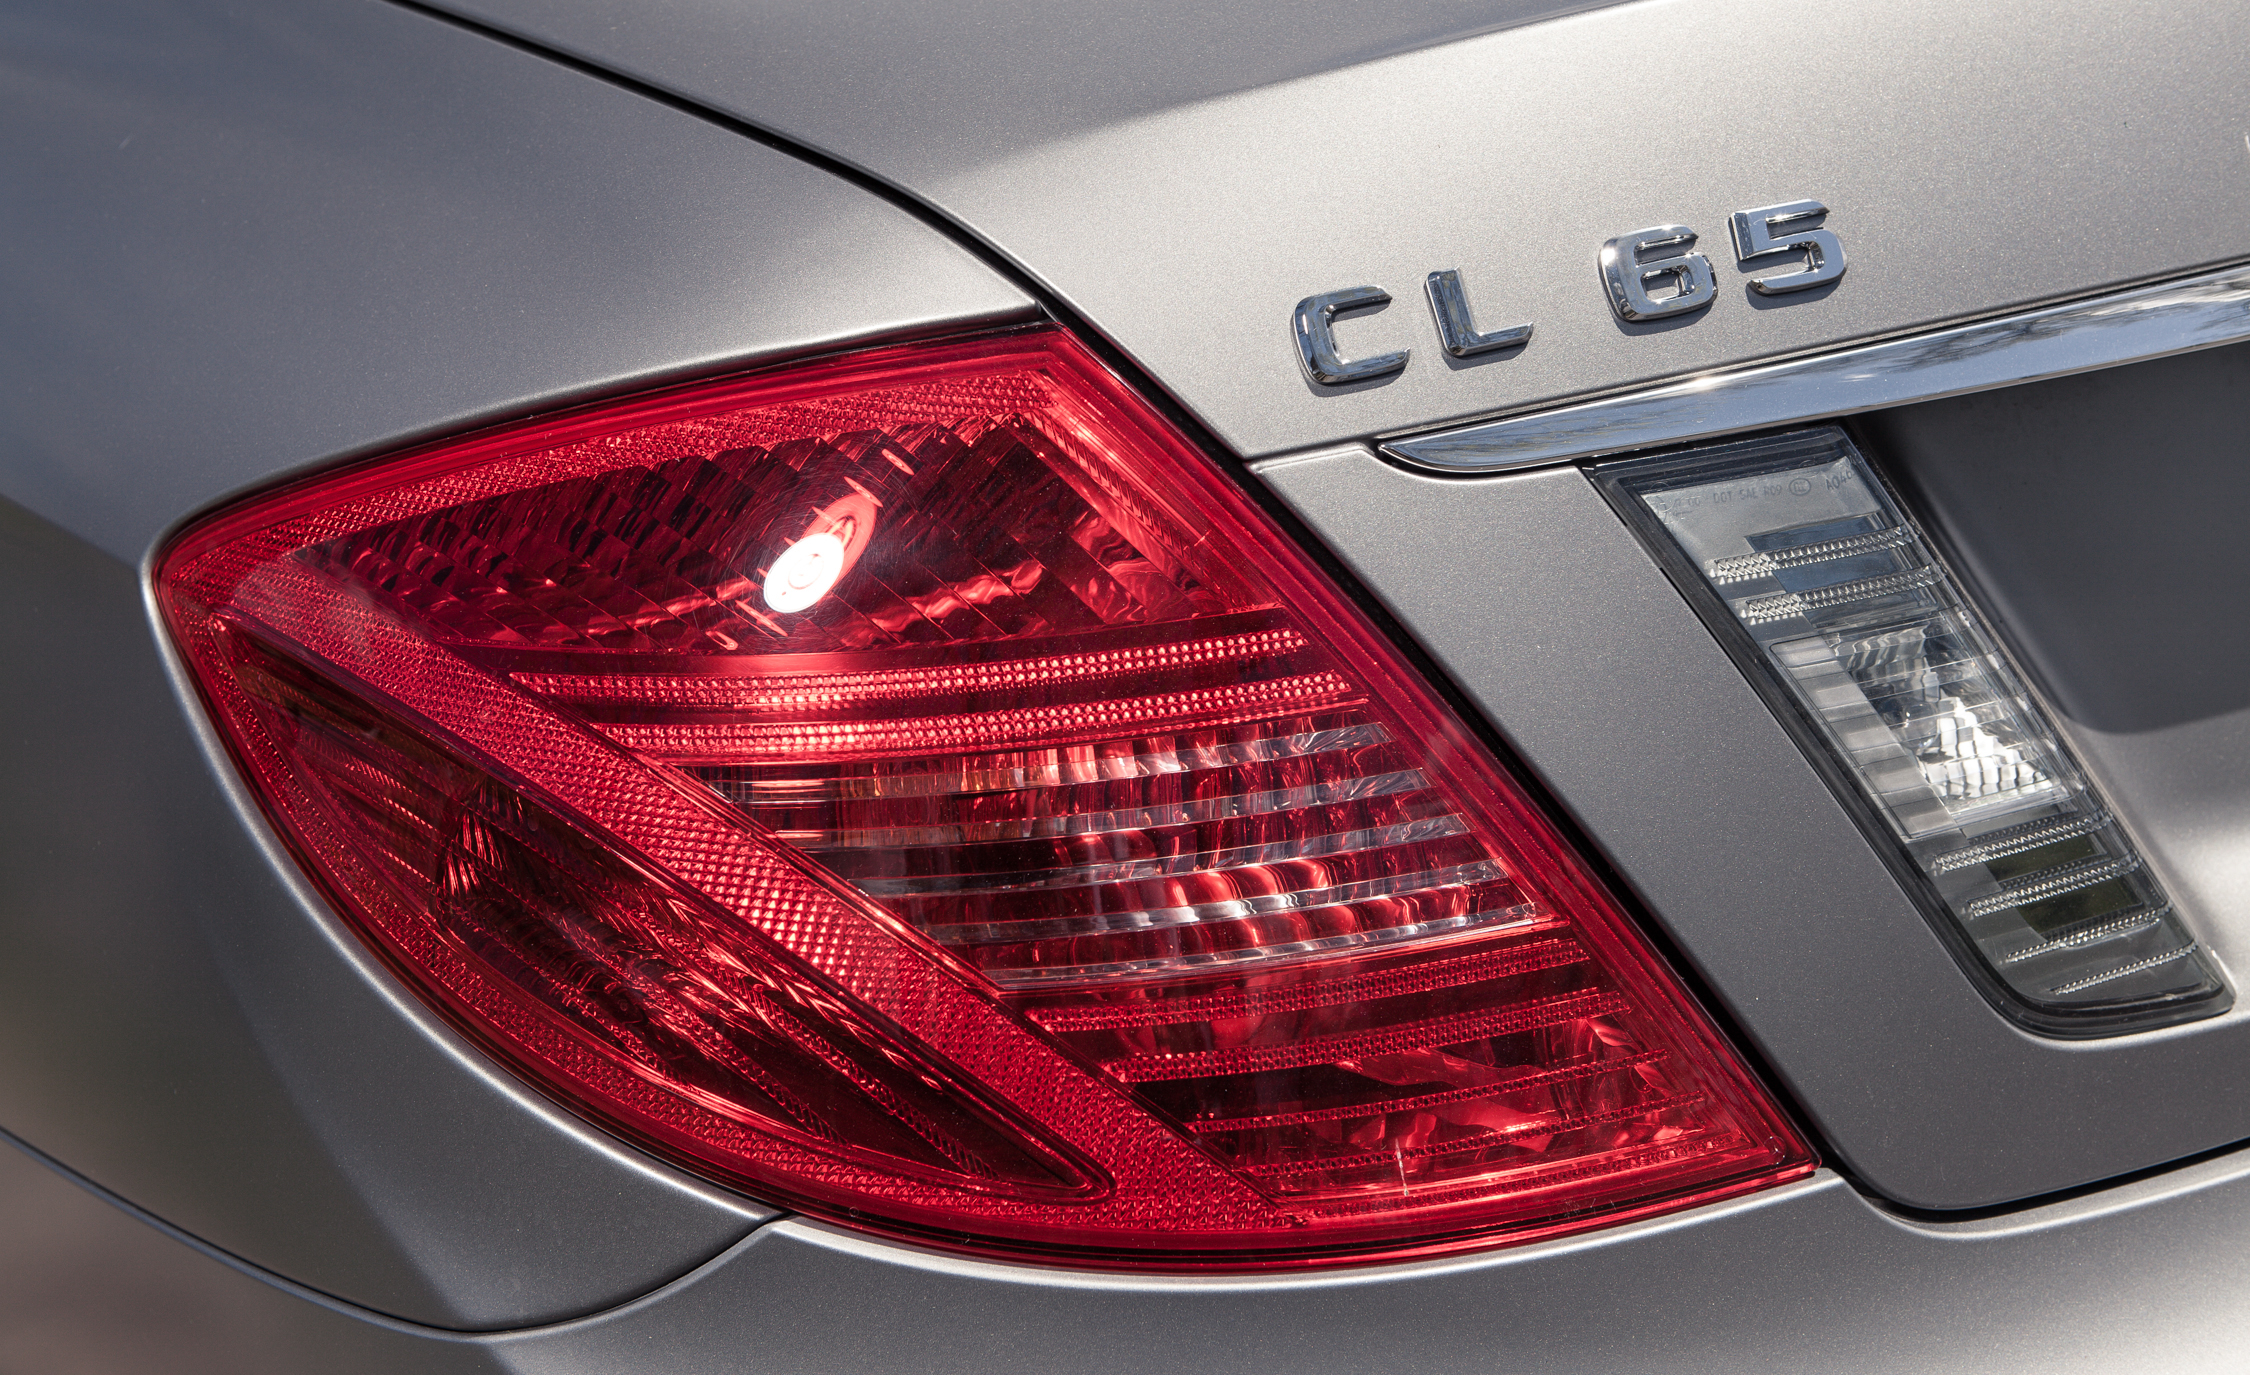 2013 Mercedes Benz CL65 AMG Exterior View Taillight And Rear Badge (Photo 8 of 27)